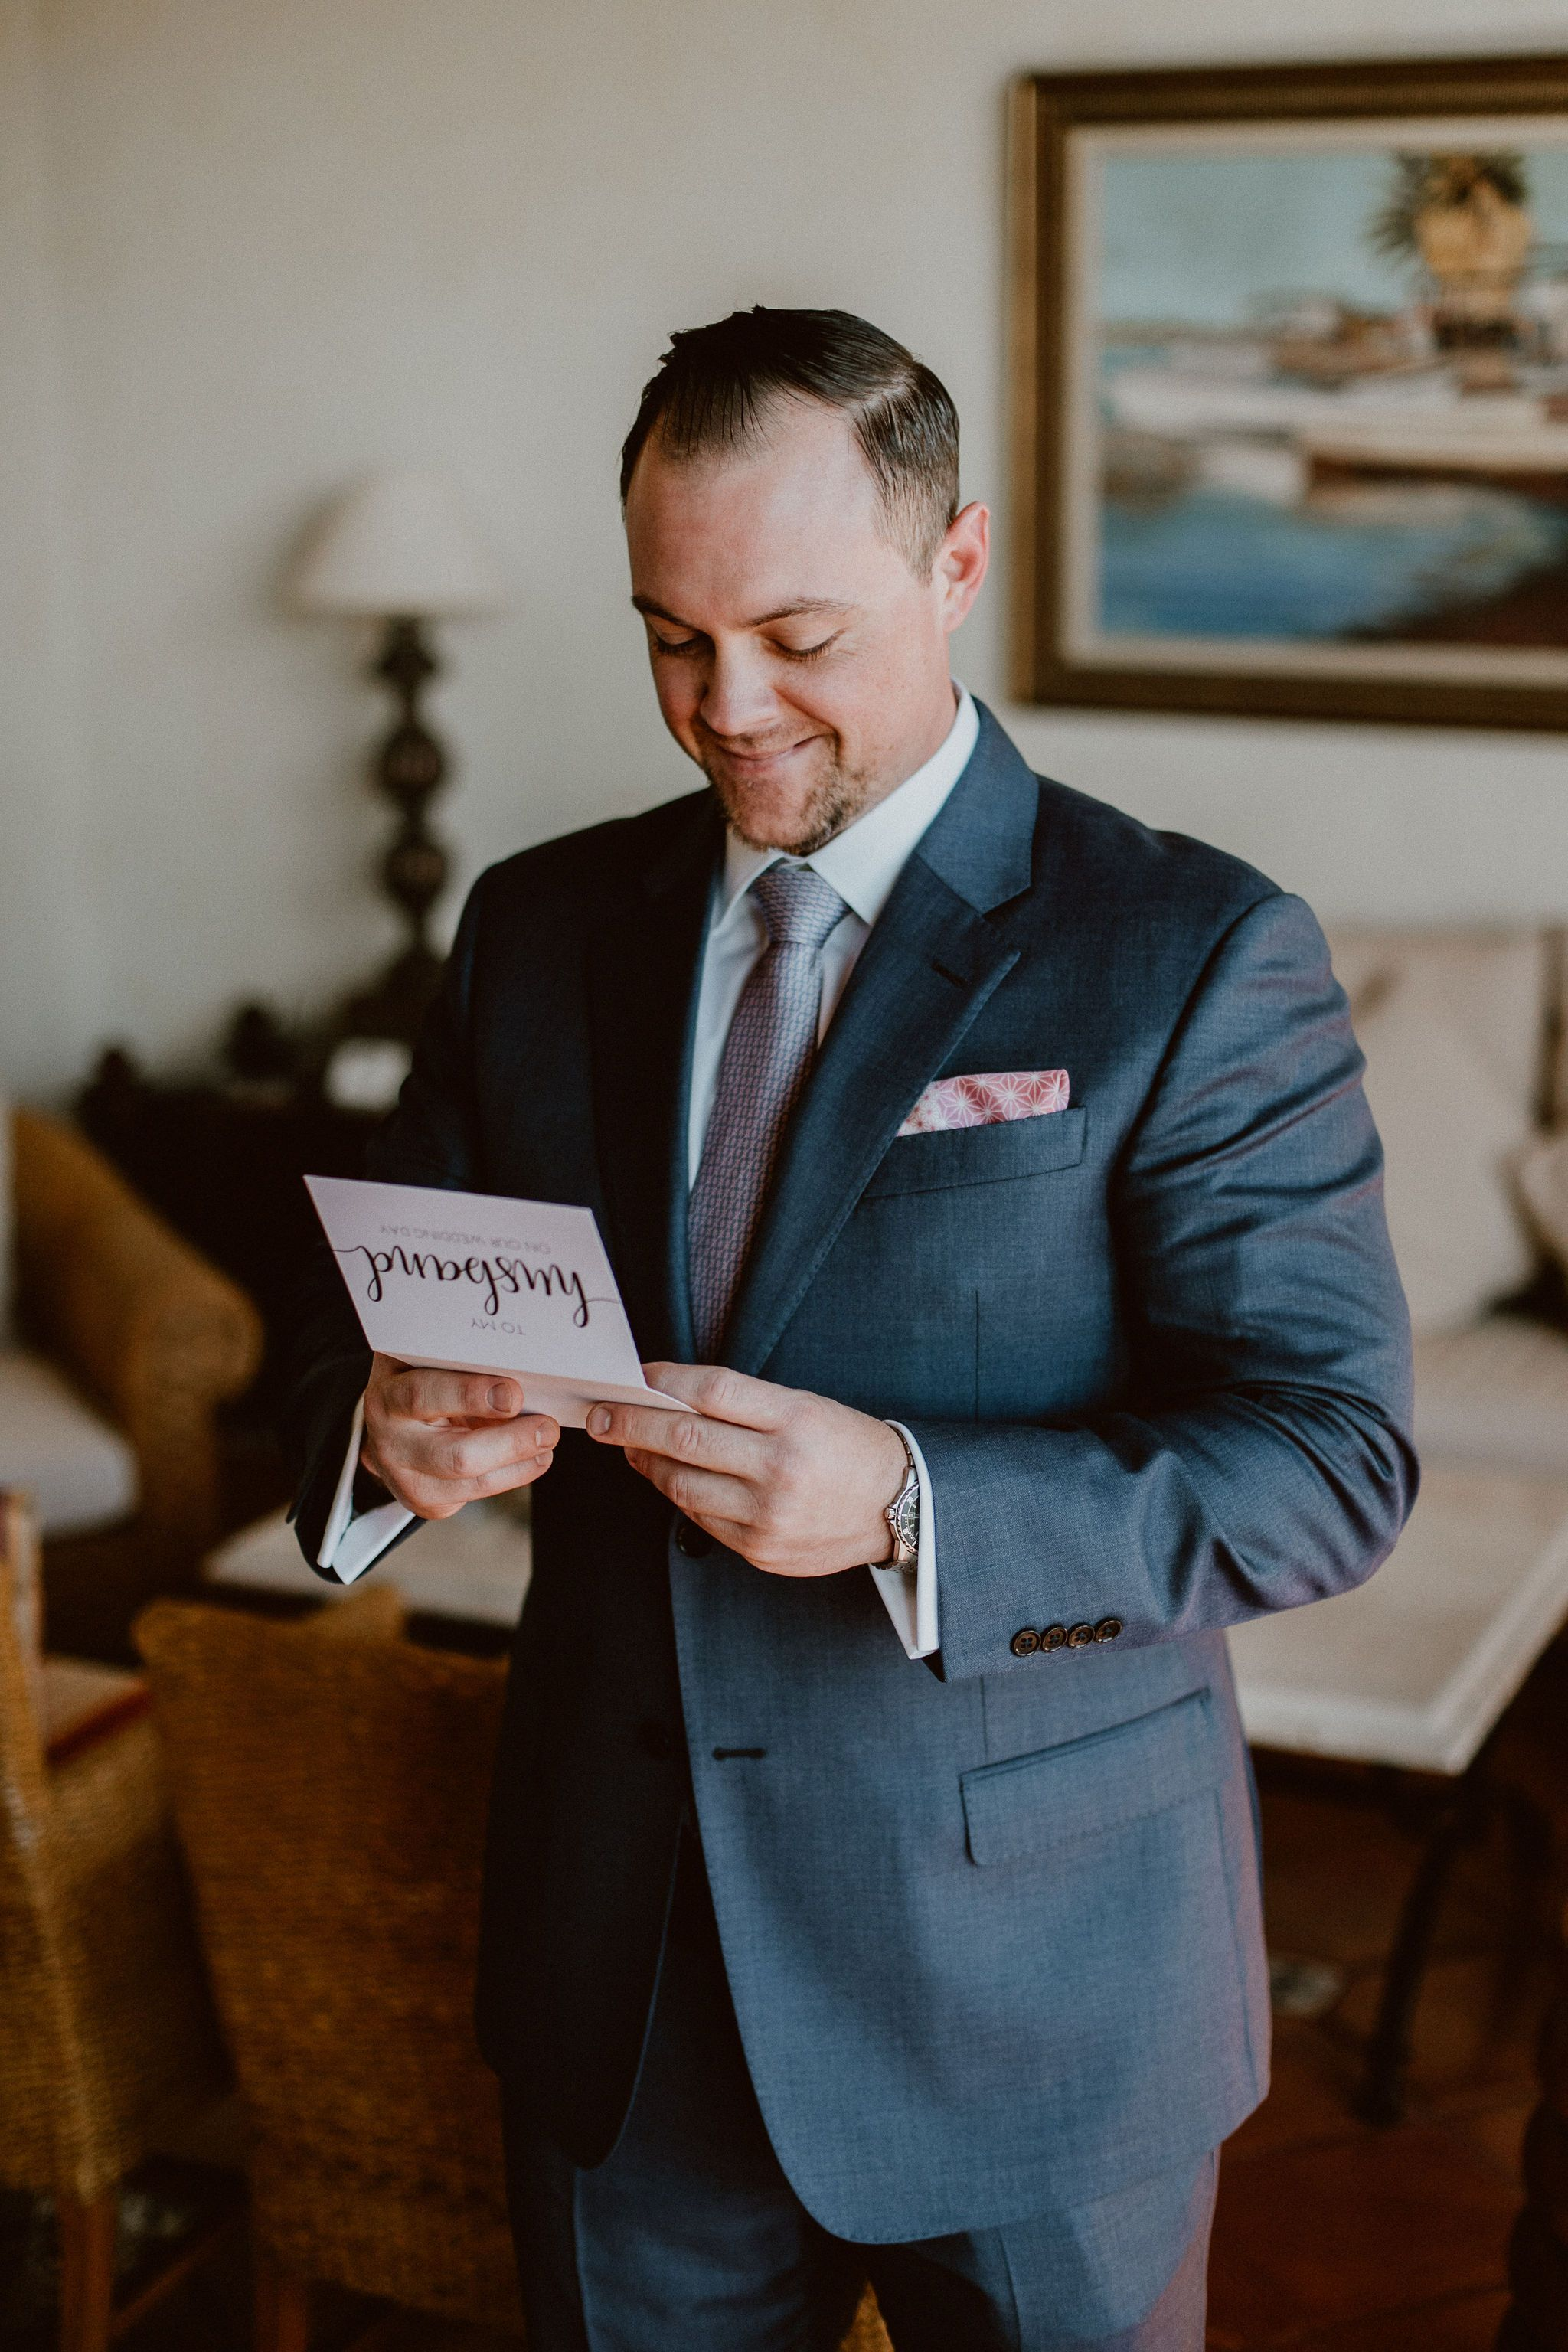 Groom reading the card his bride wrote to him right before the Wedding Ceremony on their wedding day. Their wedding was at Cabo del Sol, and we, Cabo Wedding Services were there Wedding Planners. They hired Ana and Jerome for their photography, and Emporio Floral Art for their Flowers.